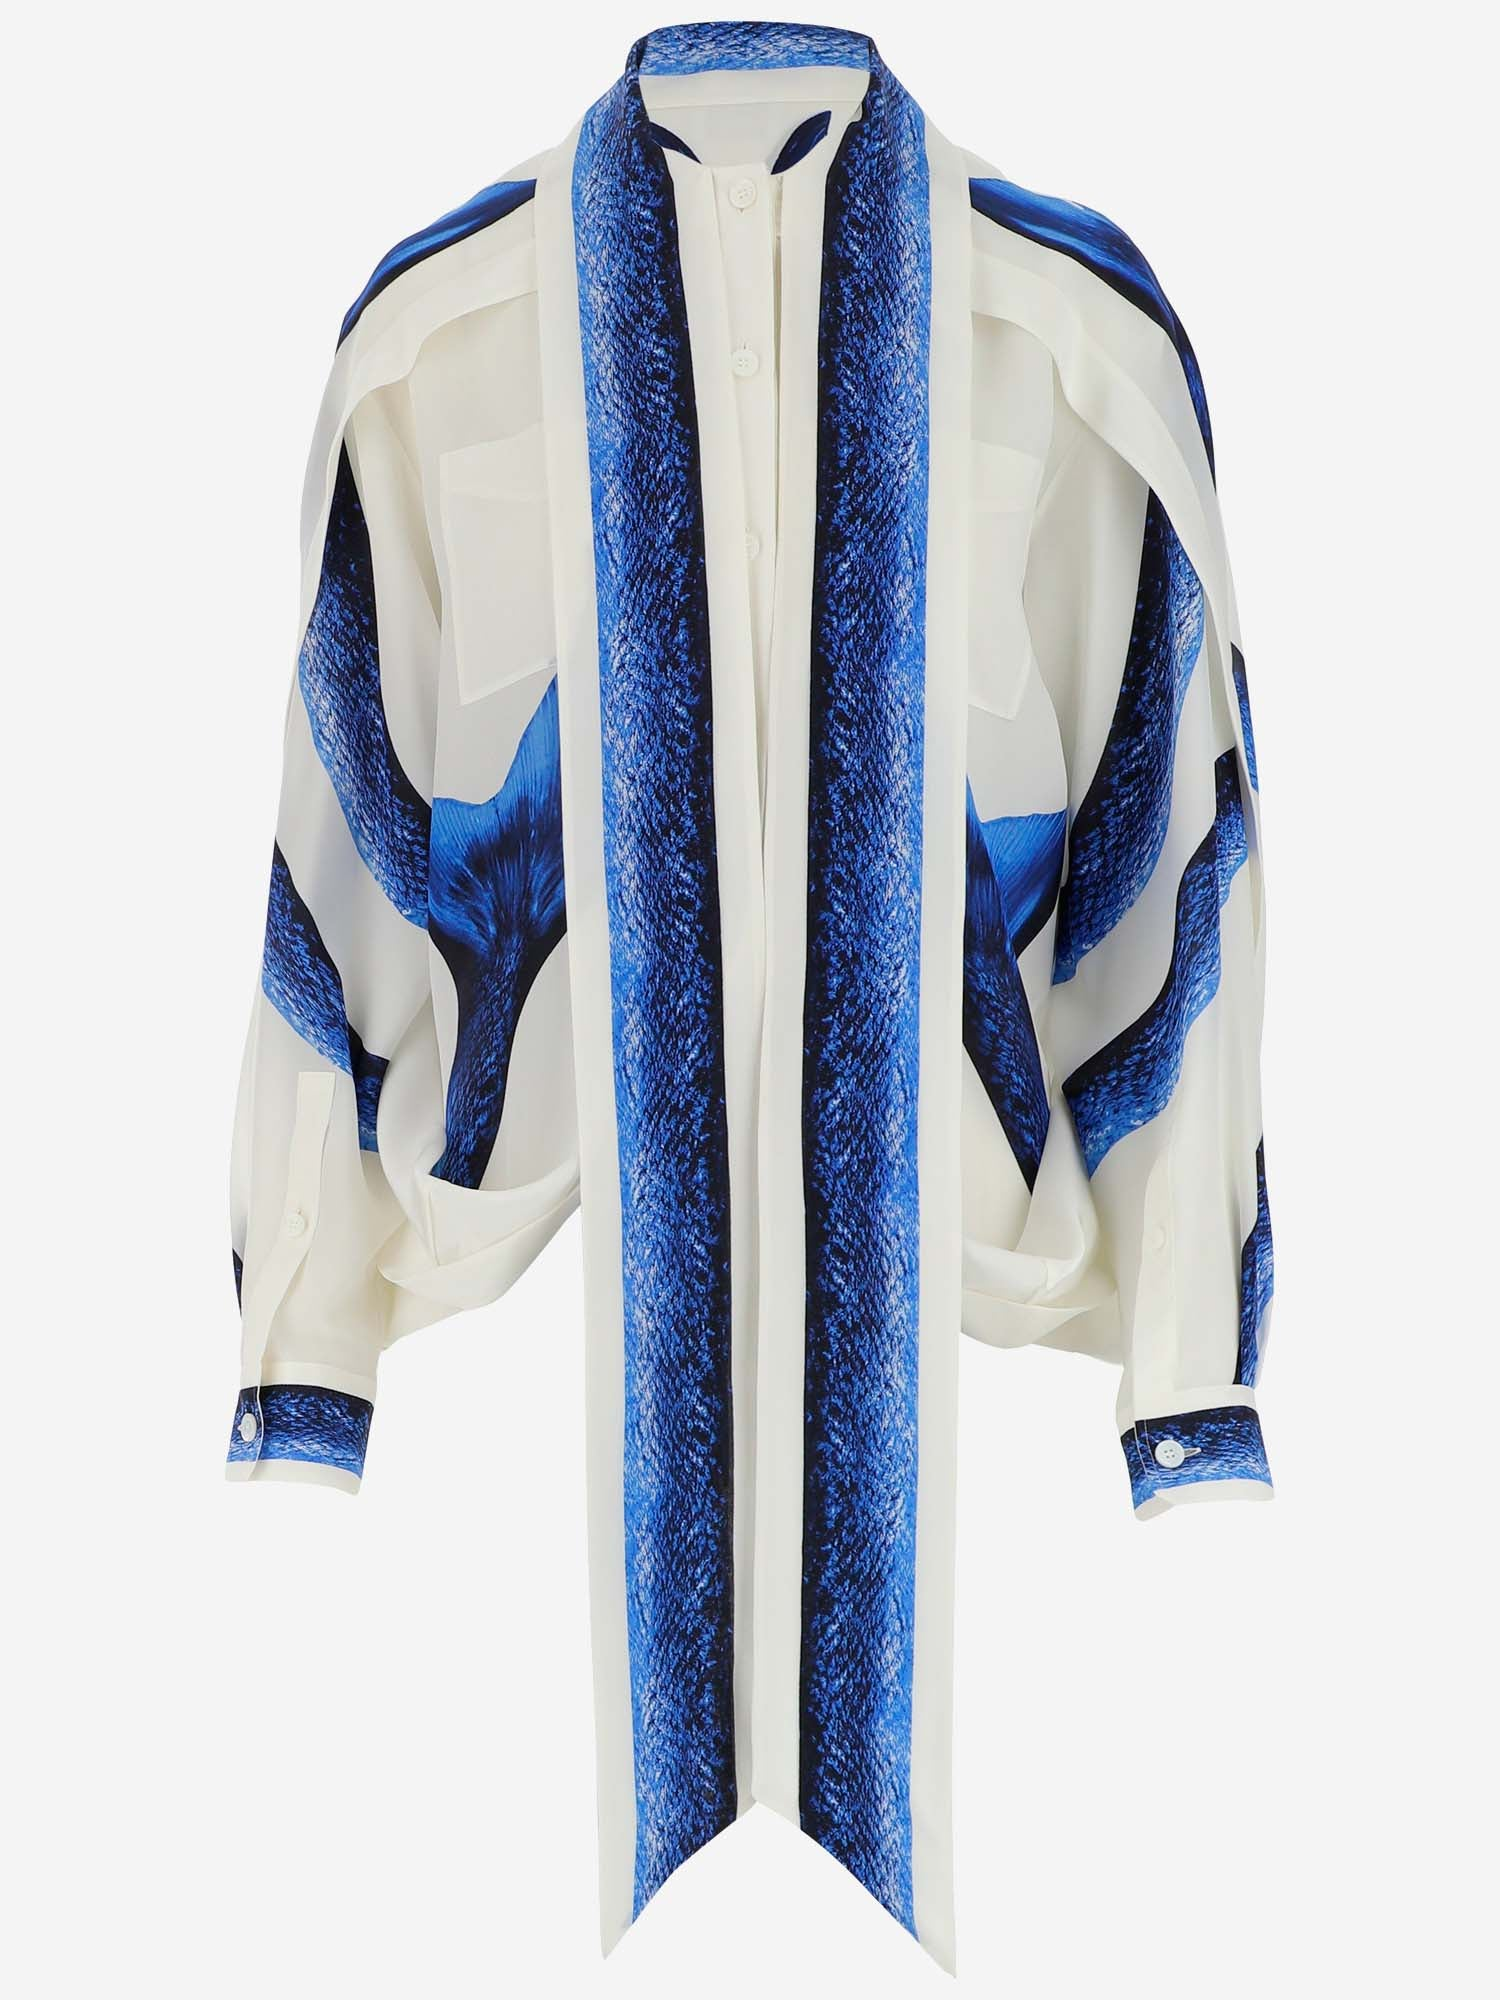 Burberry BURBERRY CAPE DETAIL MERMAID TAIL PRINT BLOUSE